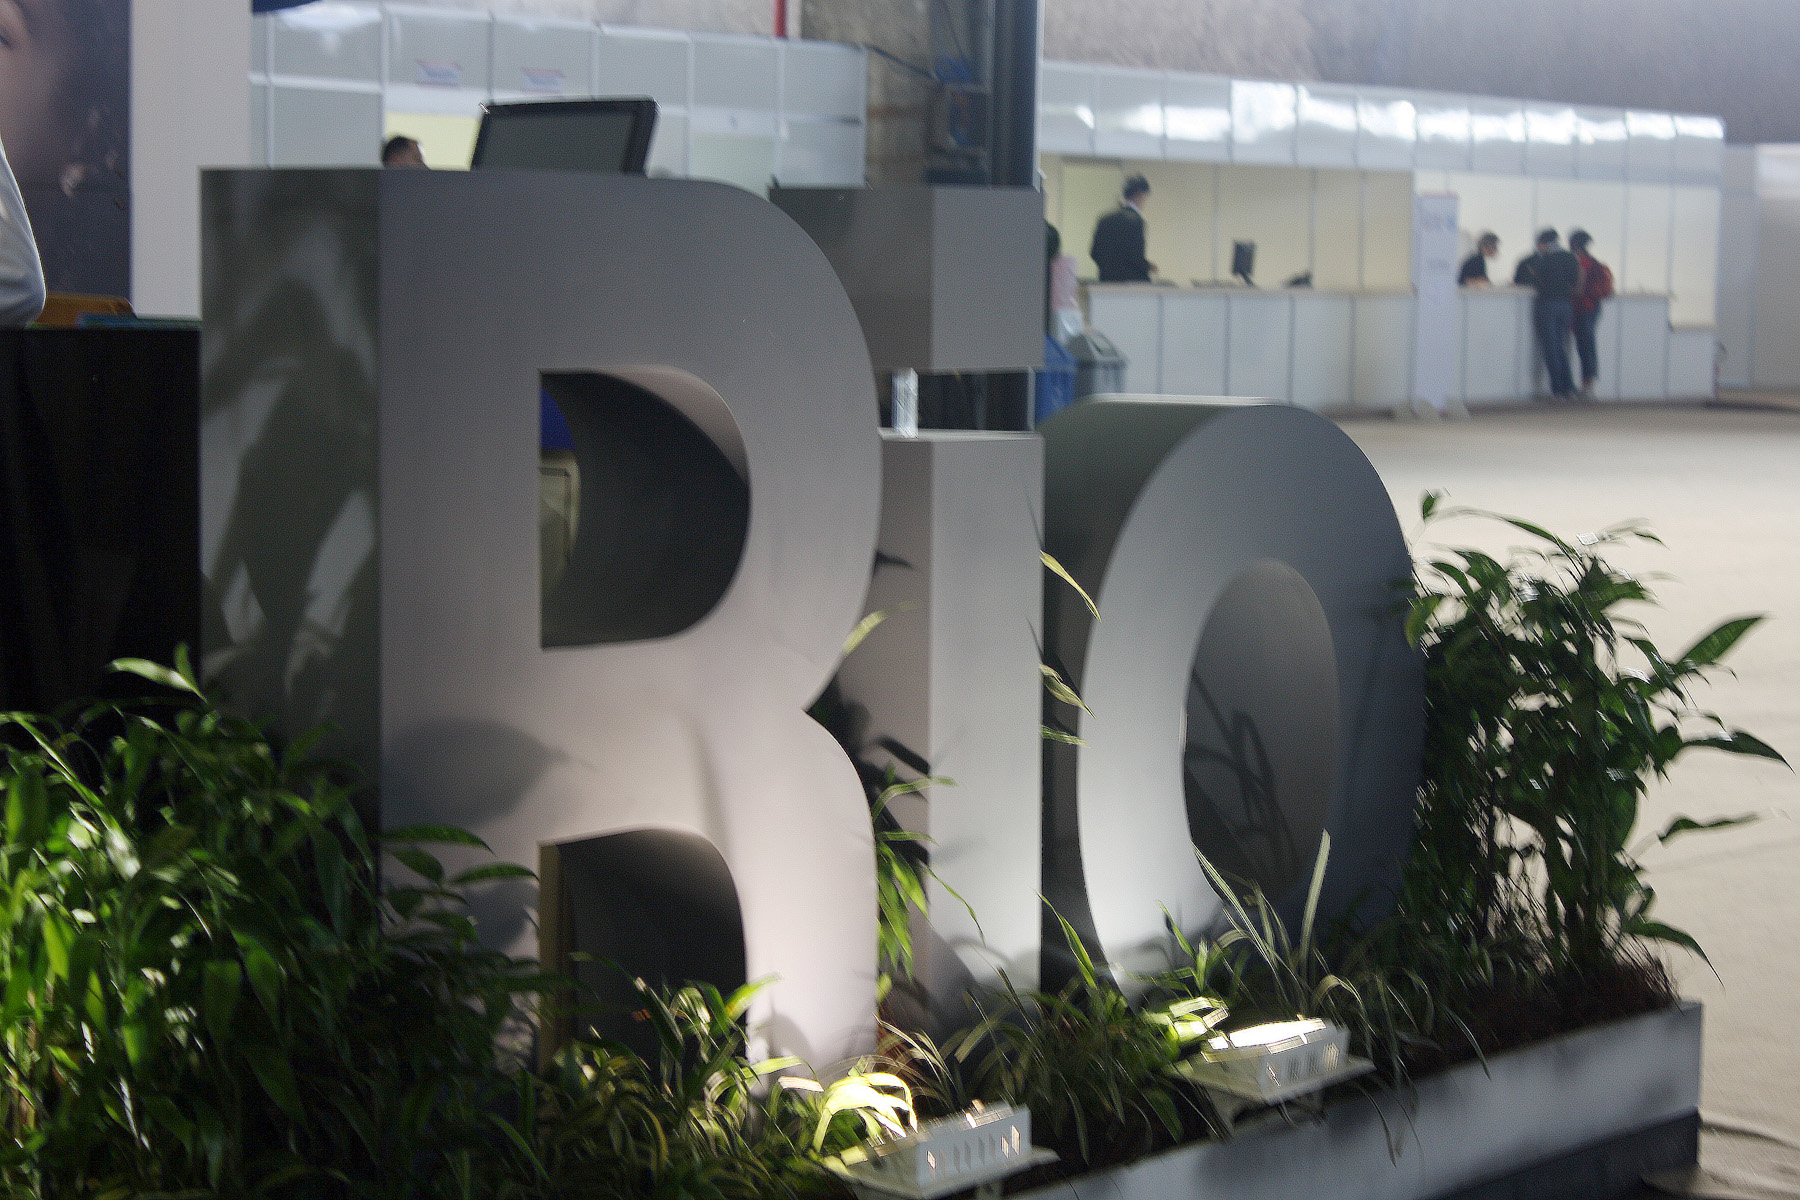 The Rio+20 conference is being billed as the largest UN conference ever to be held